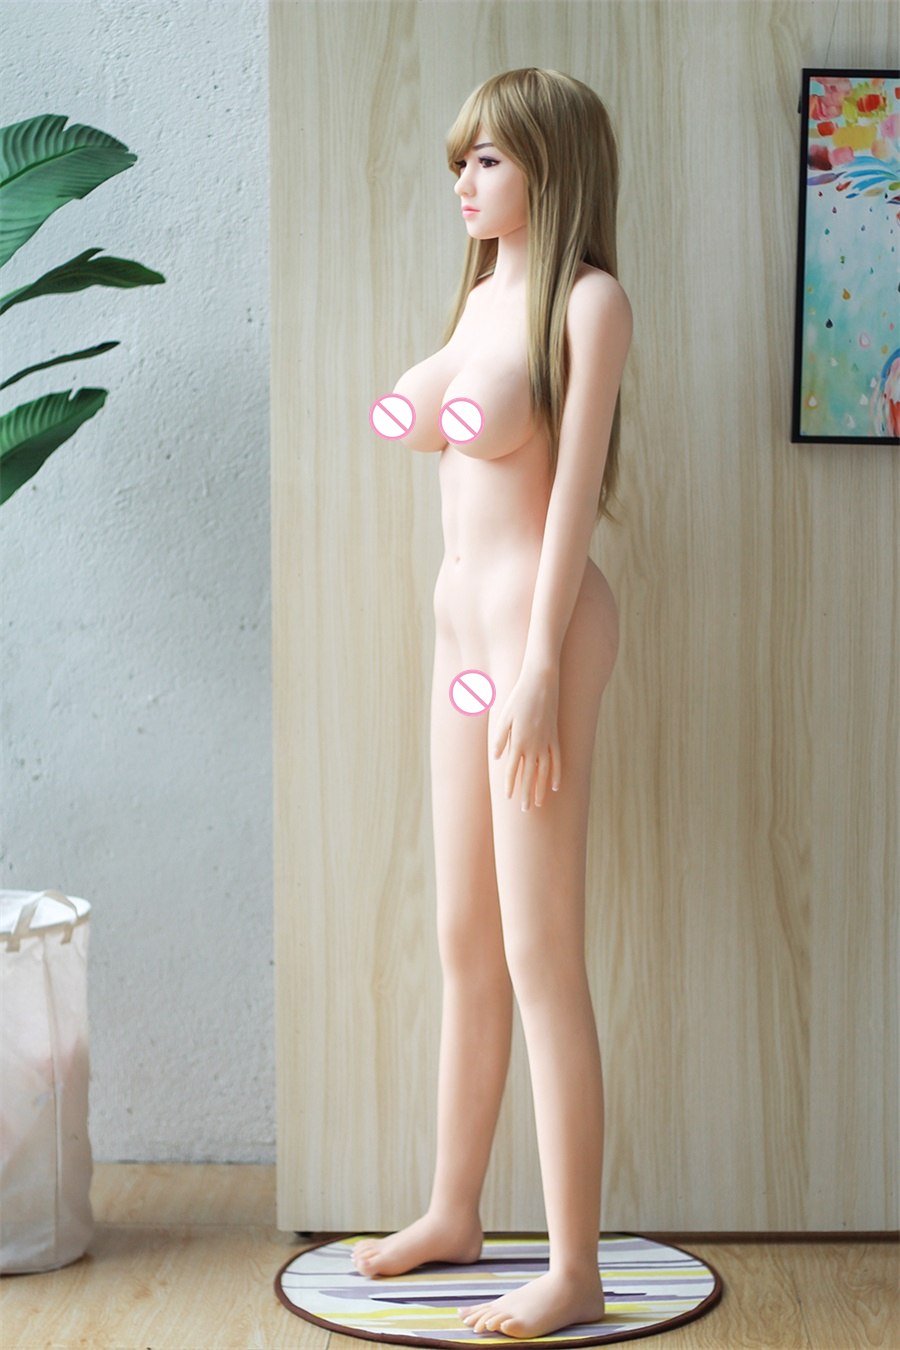 H47fb330117584859a6f3ad5e64abcd3ch 158Cm Real Silicone Japanese Anime Girl Sex Dolls Artificial Breast Oral Vagina Full AV Tits Poupee for Men Ass Pussy Porno Toys